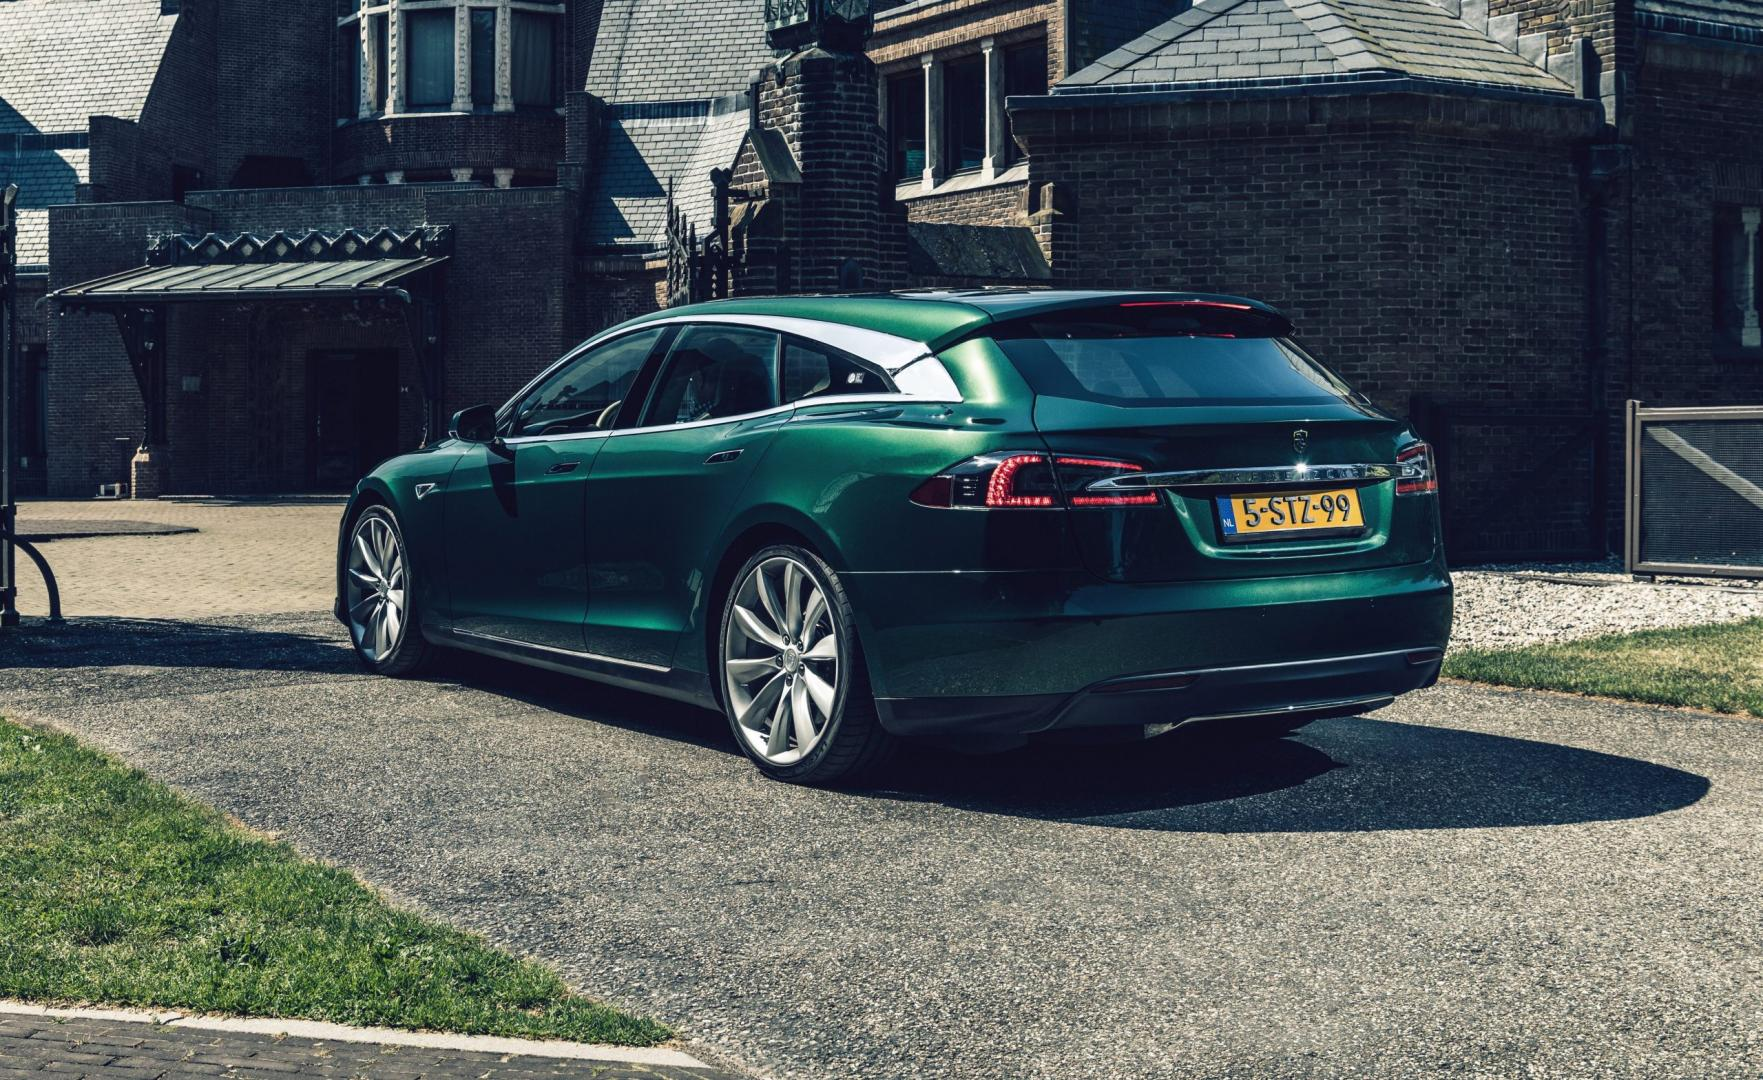 Tesla Model S Shooting Brake RemetzCar Model SB